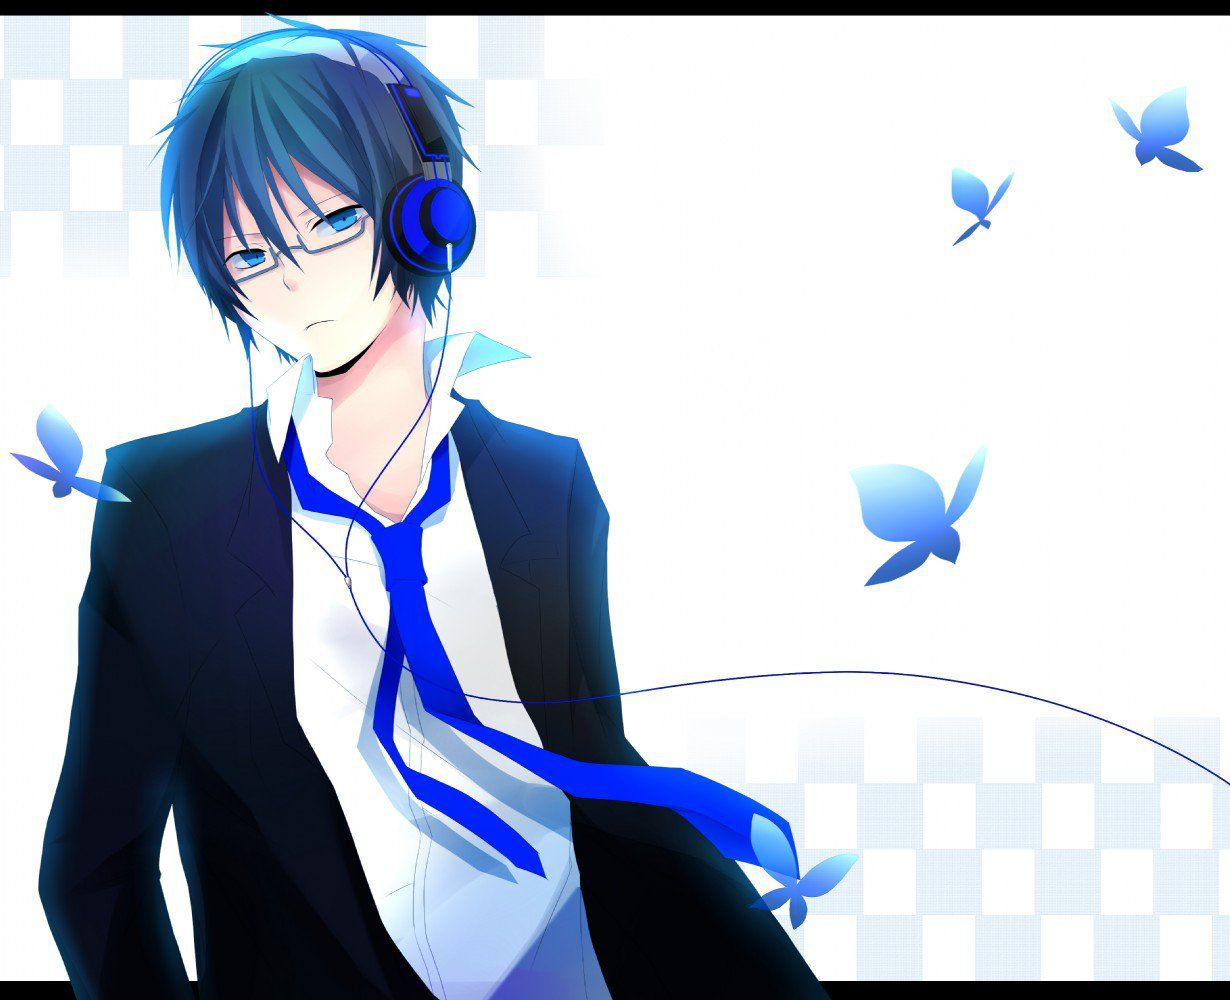 Pin By Madi Morris On Anime 3 Anime Boy Anime Boy With Headphones Blue Hair Anime Boy